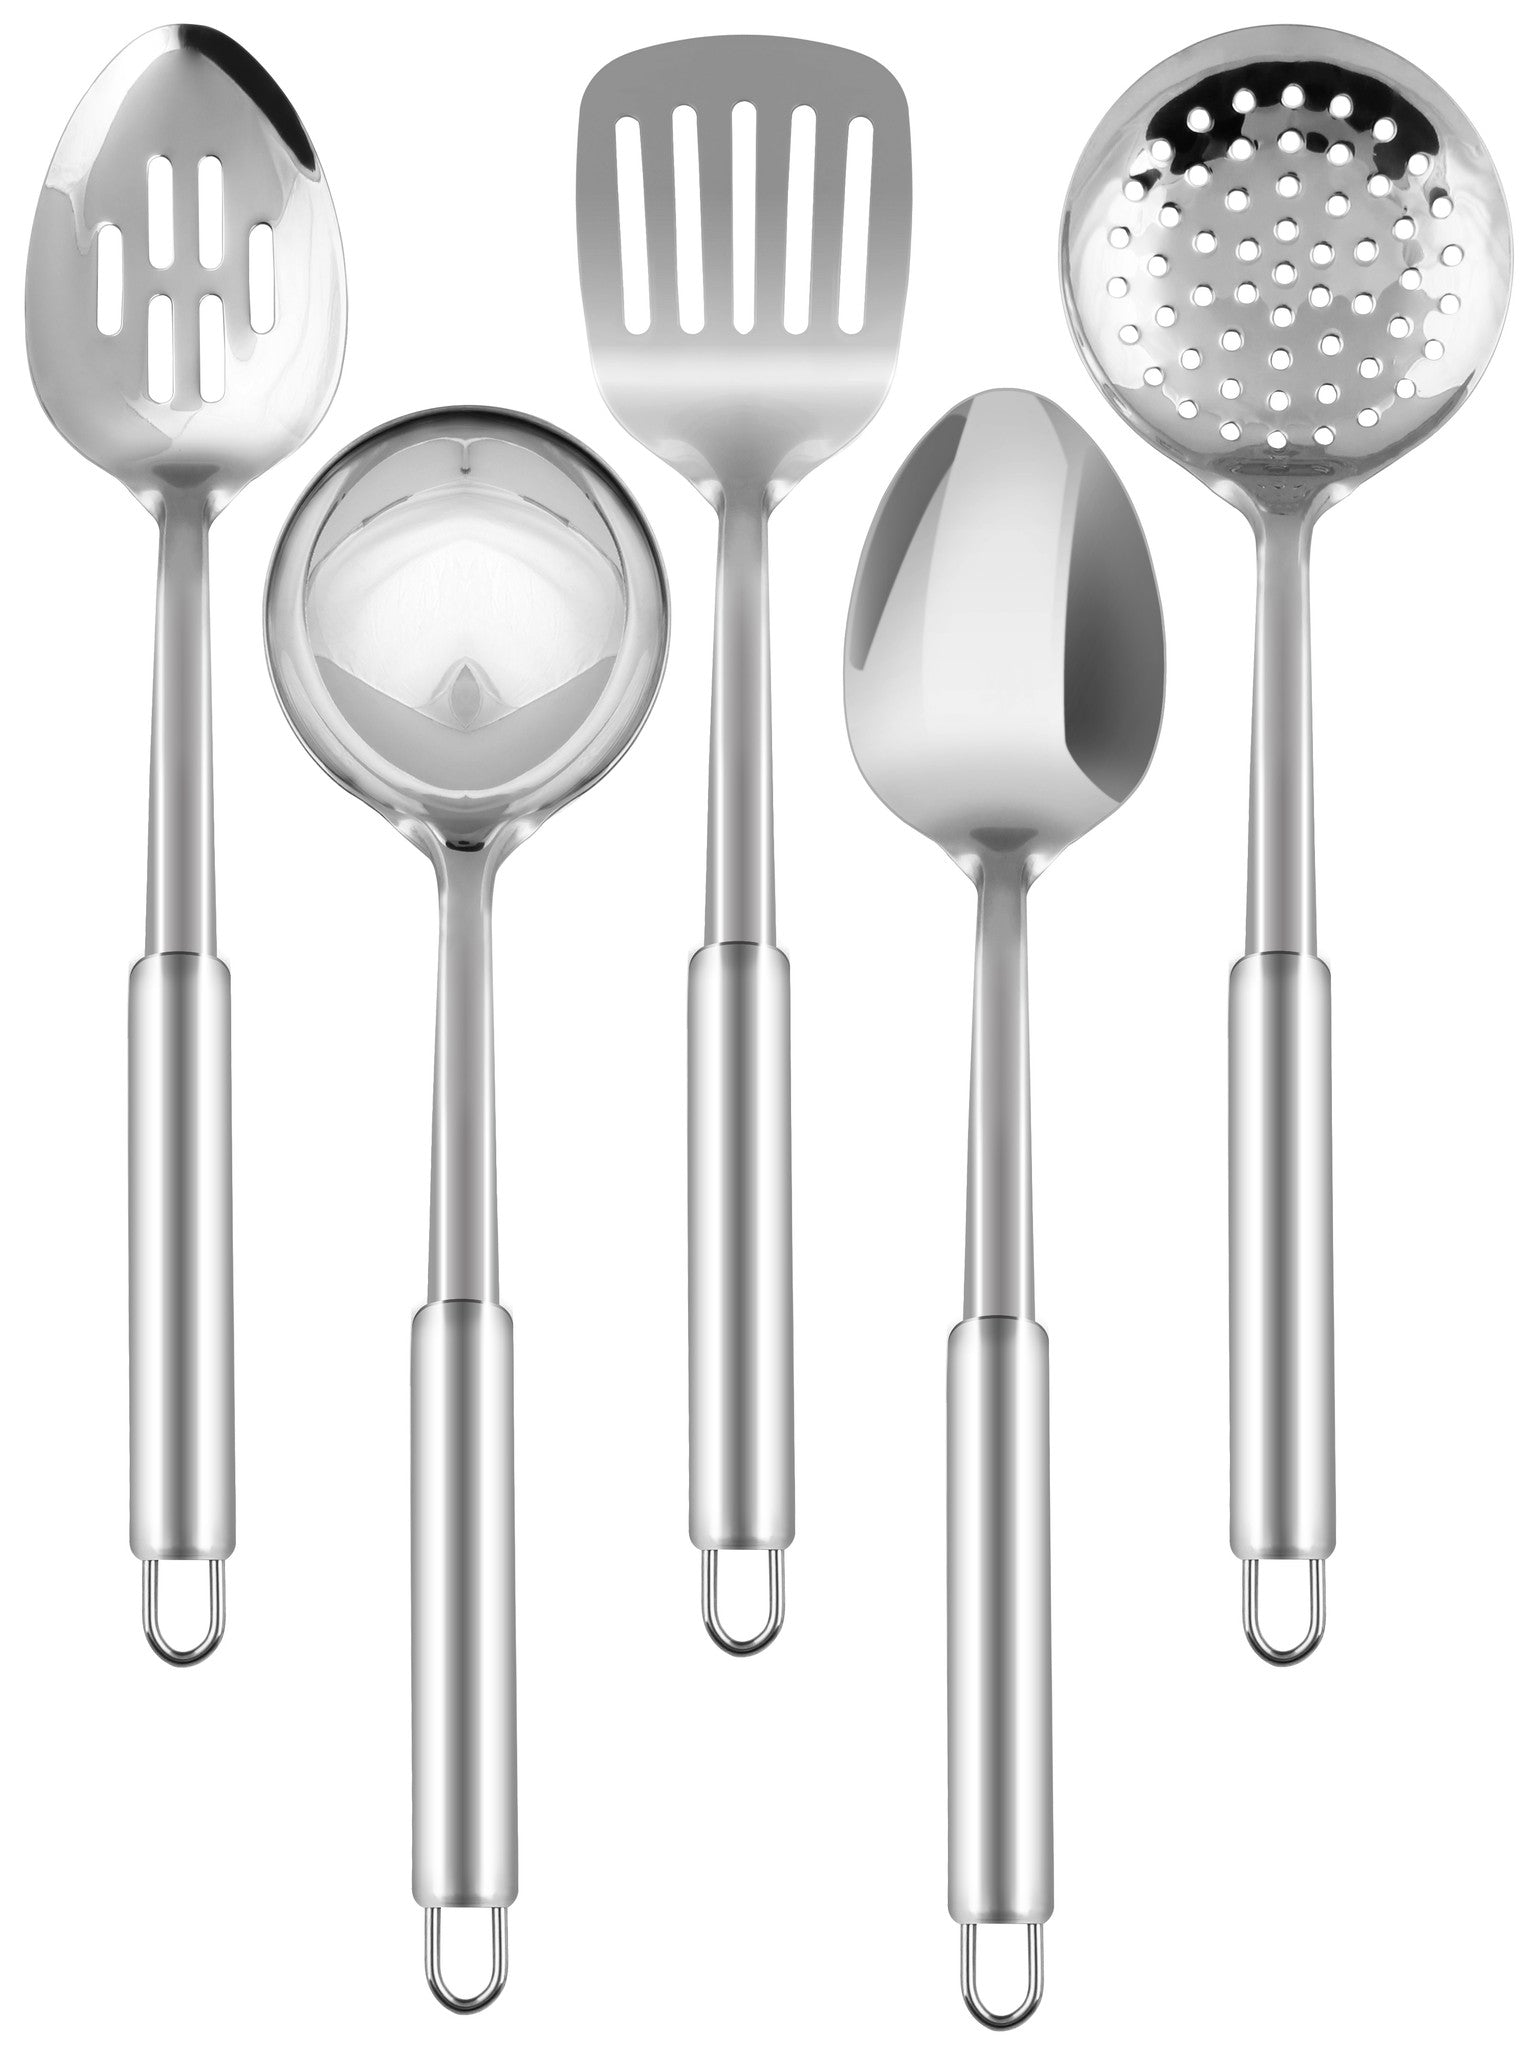 Stainless Steel 5 Pcs Cooking Spoon Set